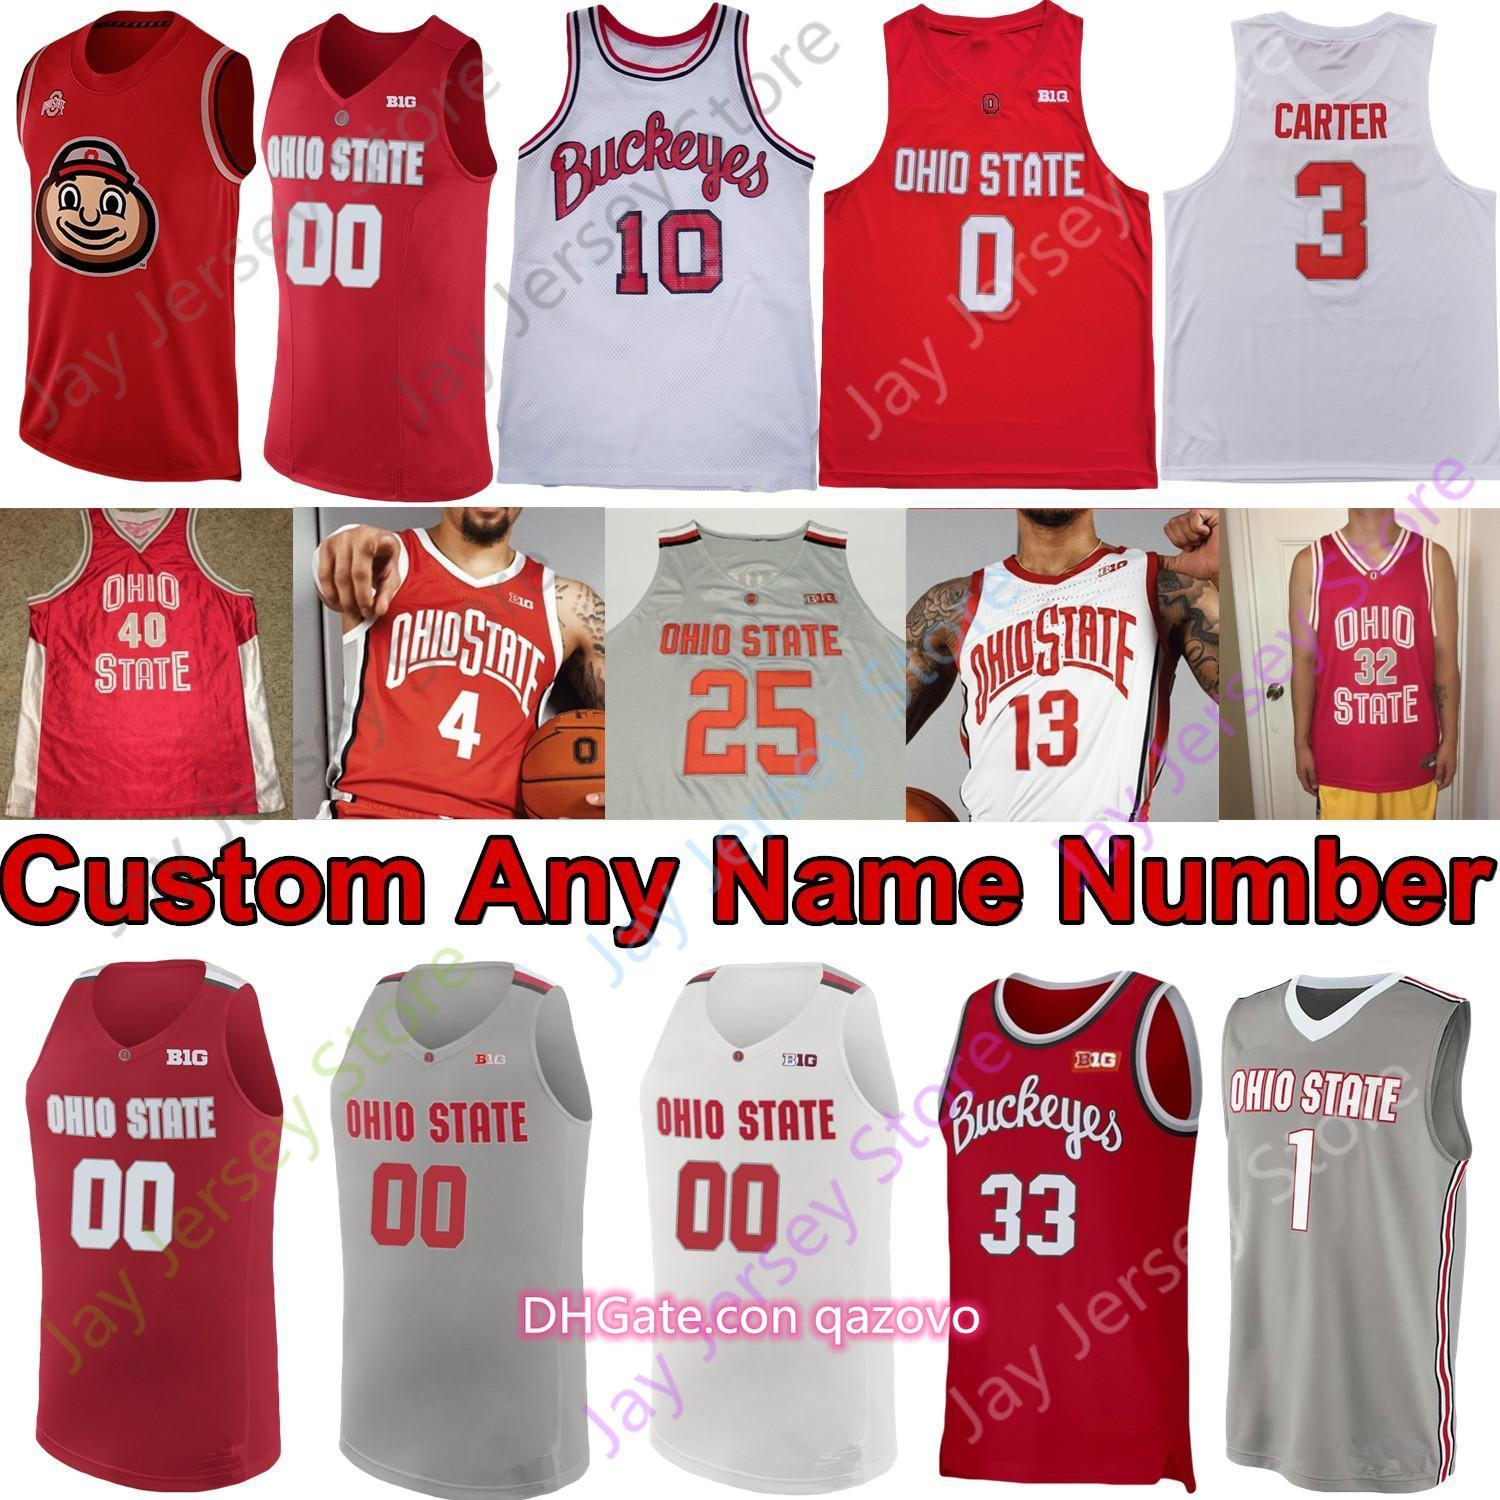 2020 New Ohio State Buckeyes Jersey Basketball Jersey NCAA College Kyle jeune D.J. Carton kaleb